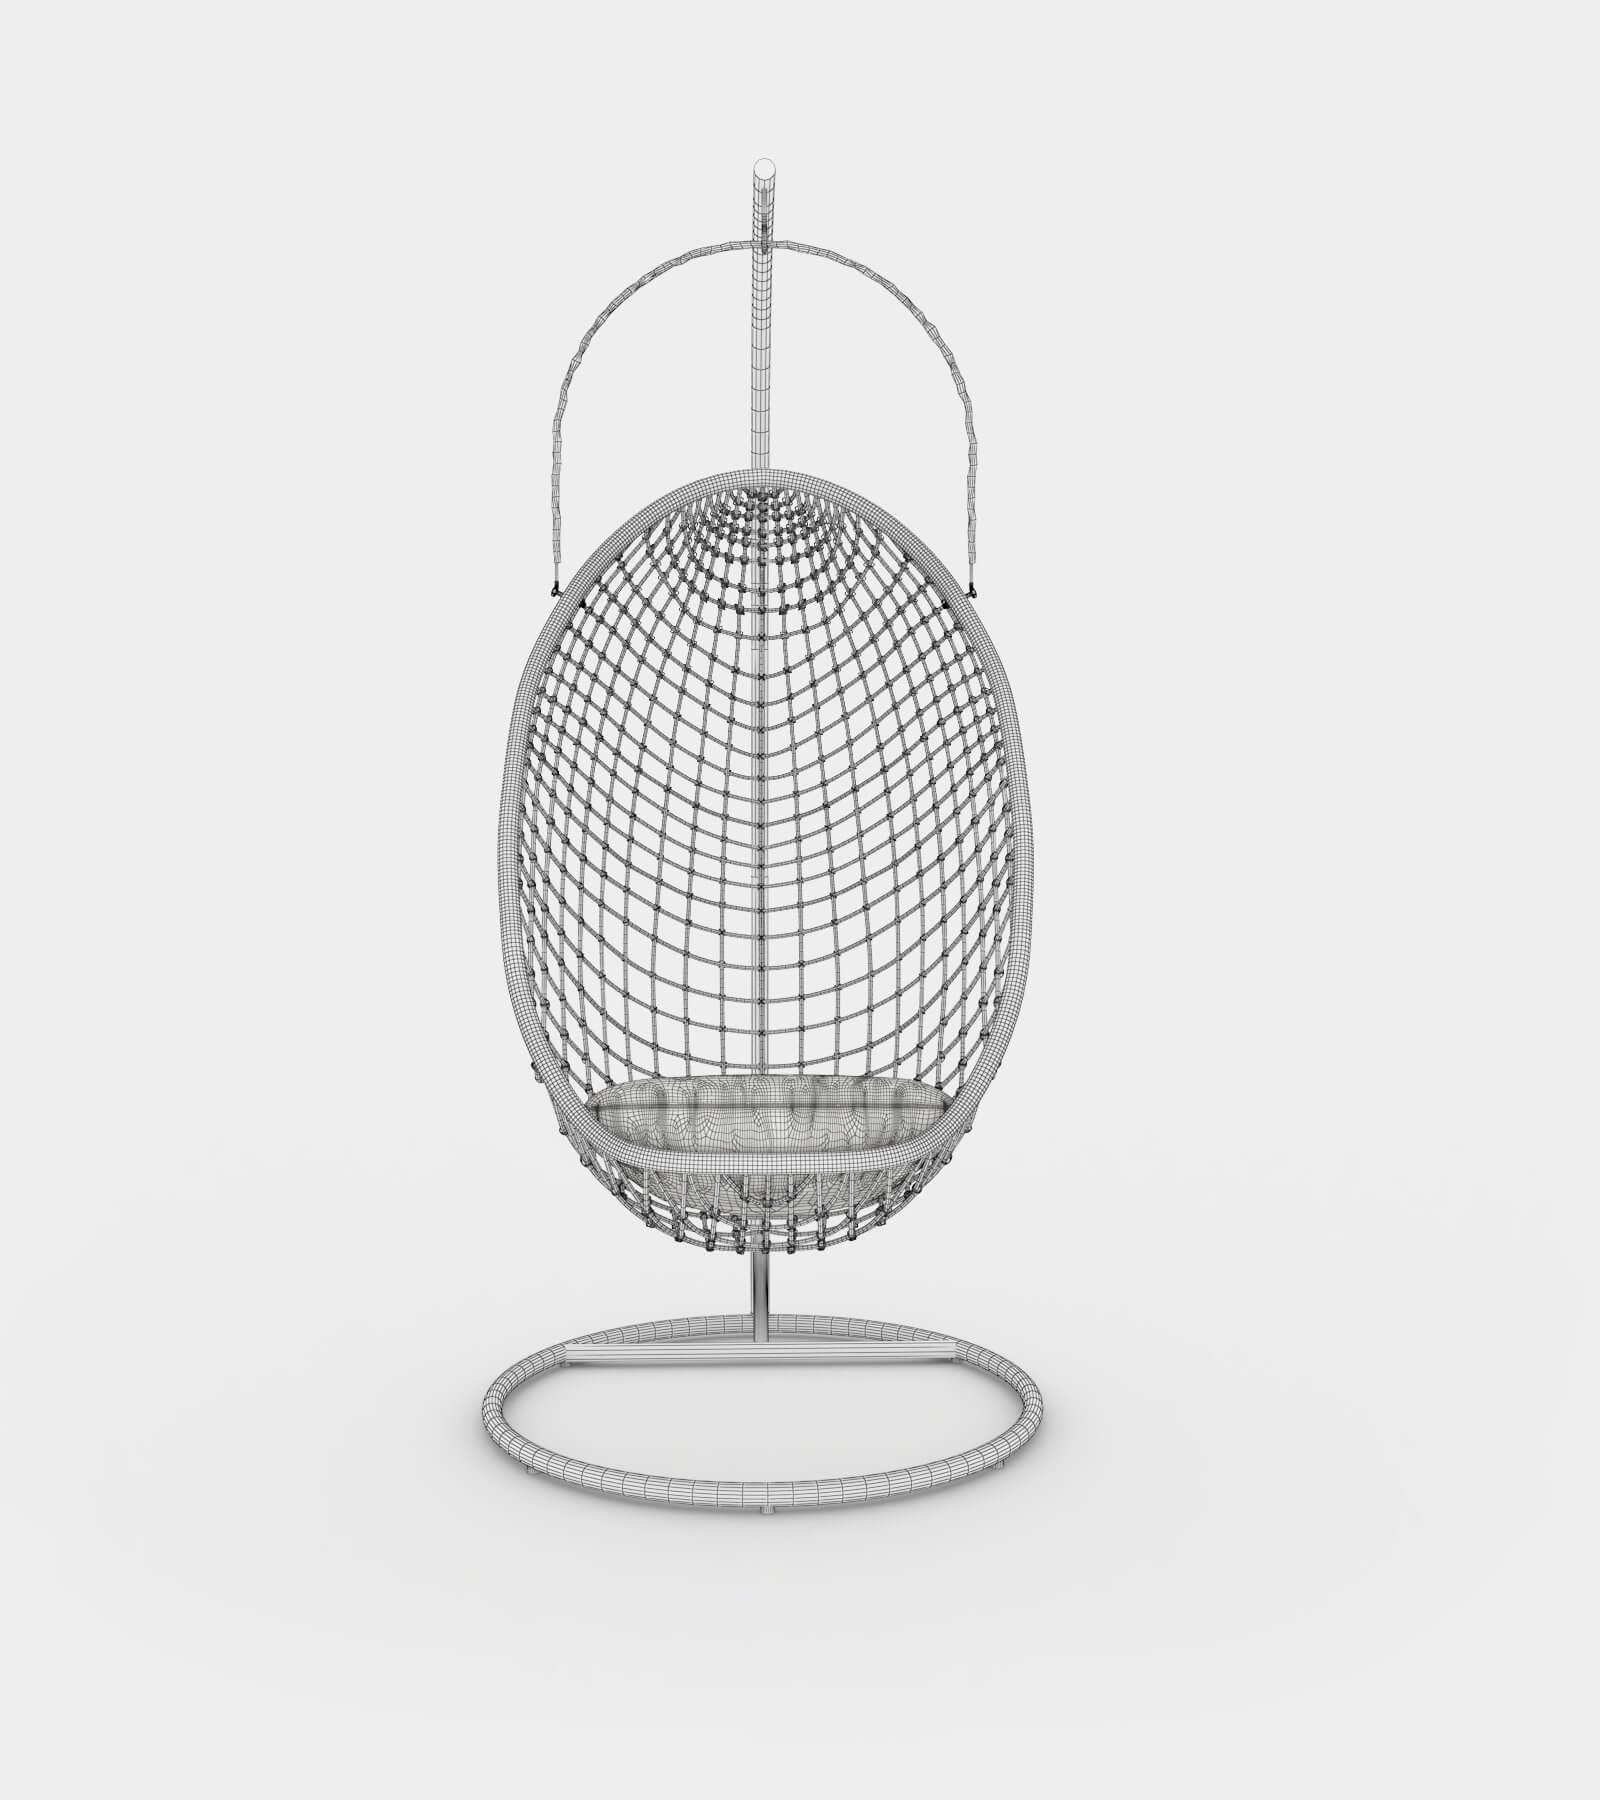 Chillout rattan hanging chair-wire-1 3D Model